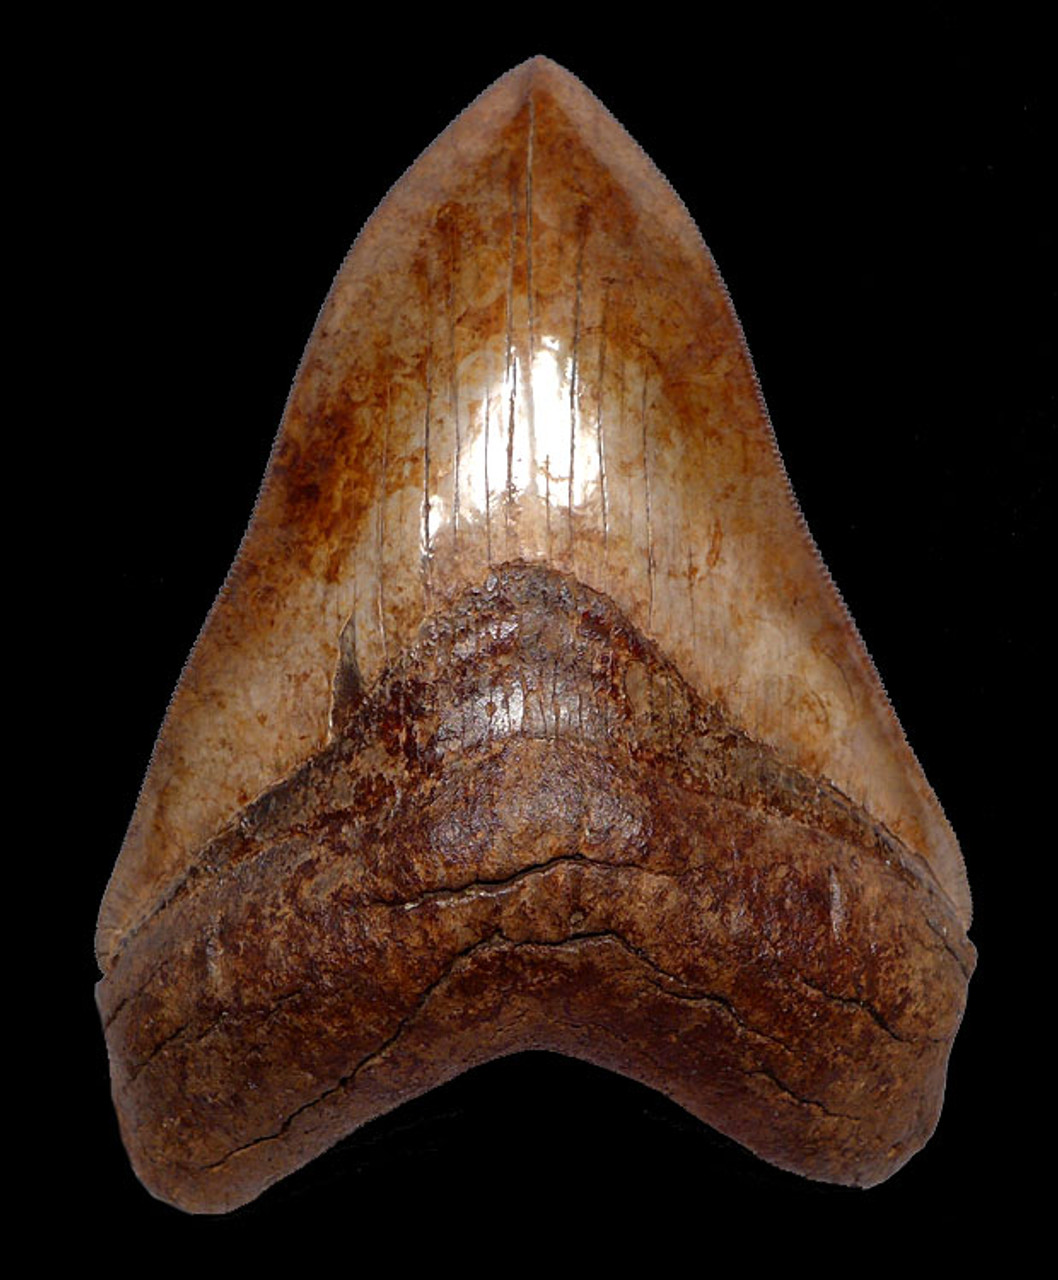 SH6-328 - FINEST COLLECTOR GRADE SPOTTED COPPER RED AND CREAM 4.85 INCH MEGALODON SHARK TOOTH